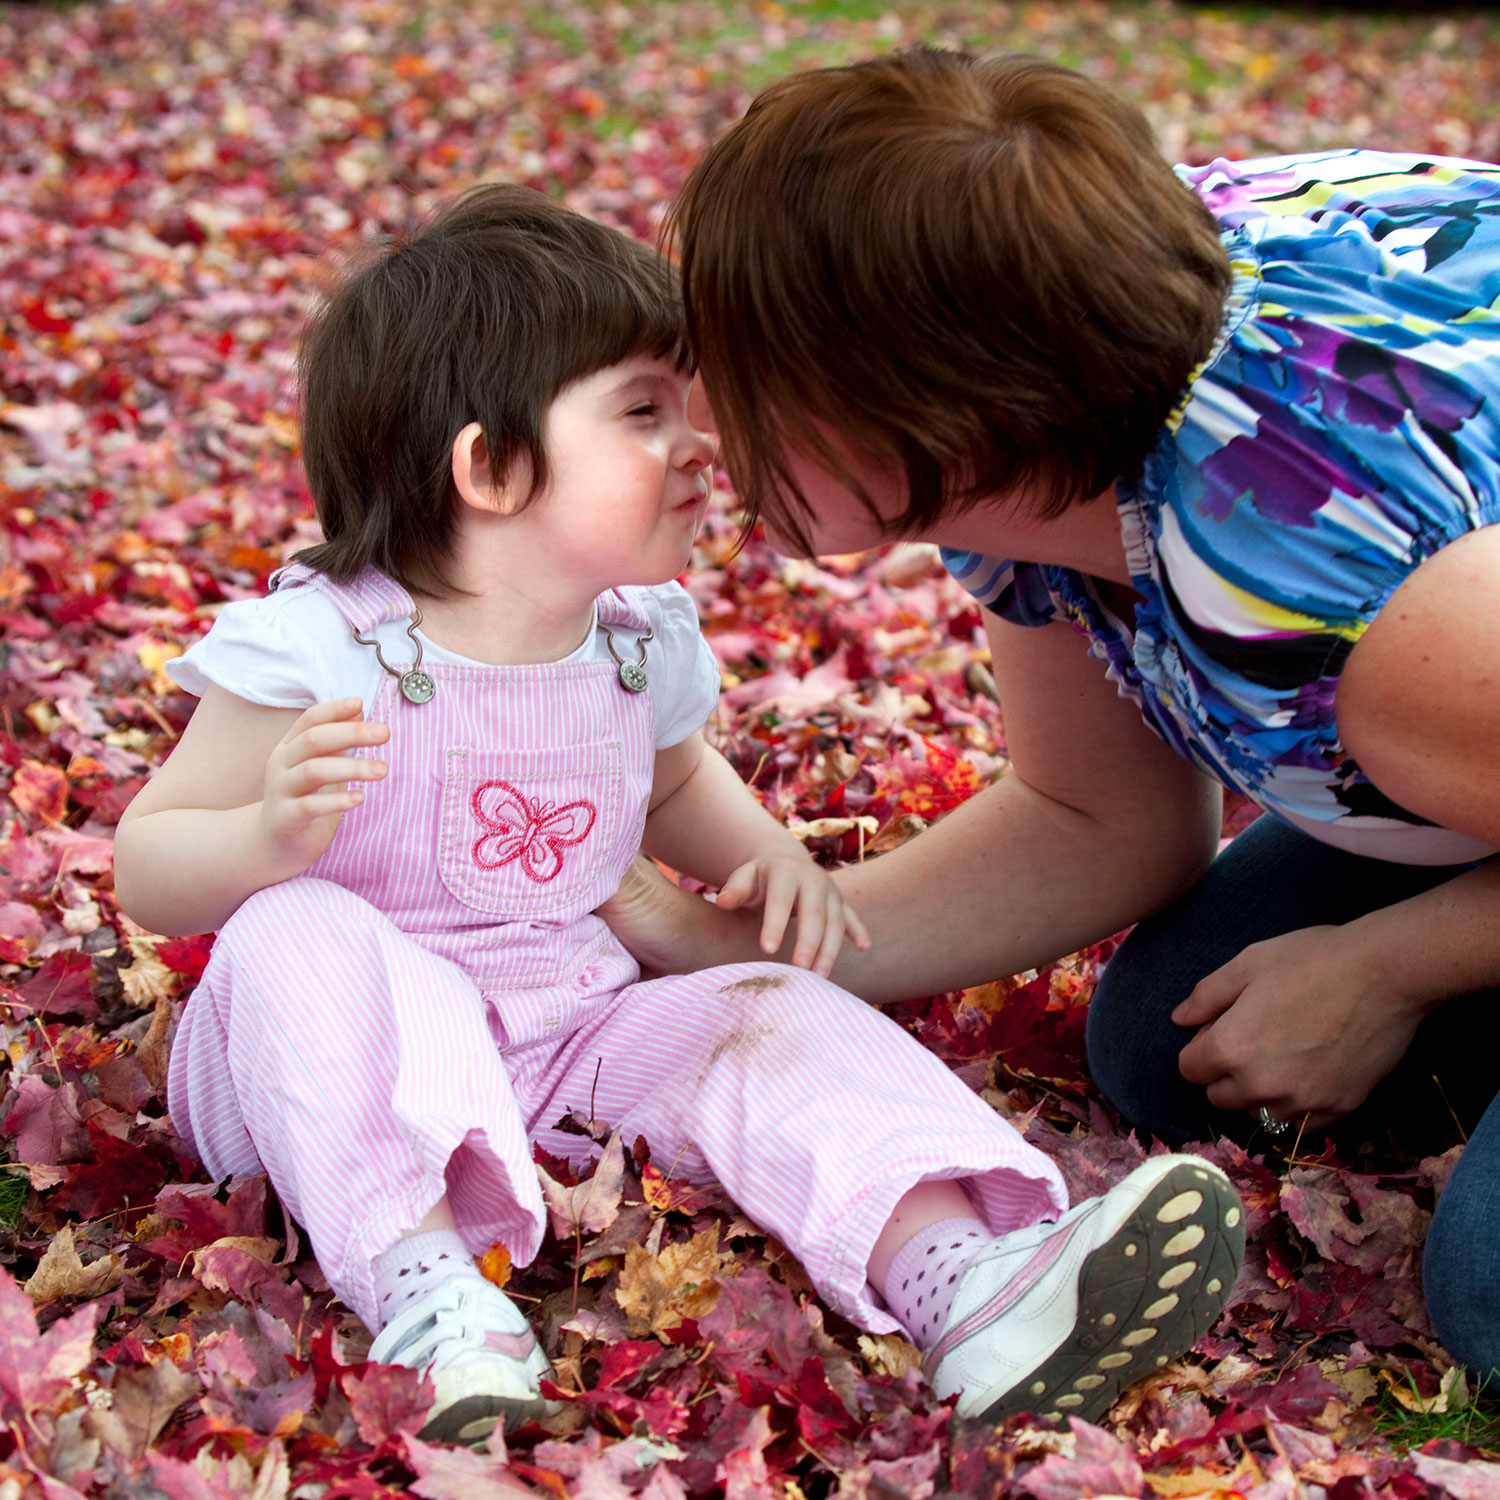 Toddler seated in autumn leaves outside. Adult kneels beside her. They give each other a kiss.